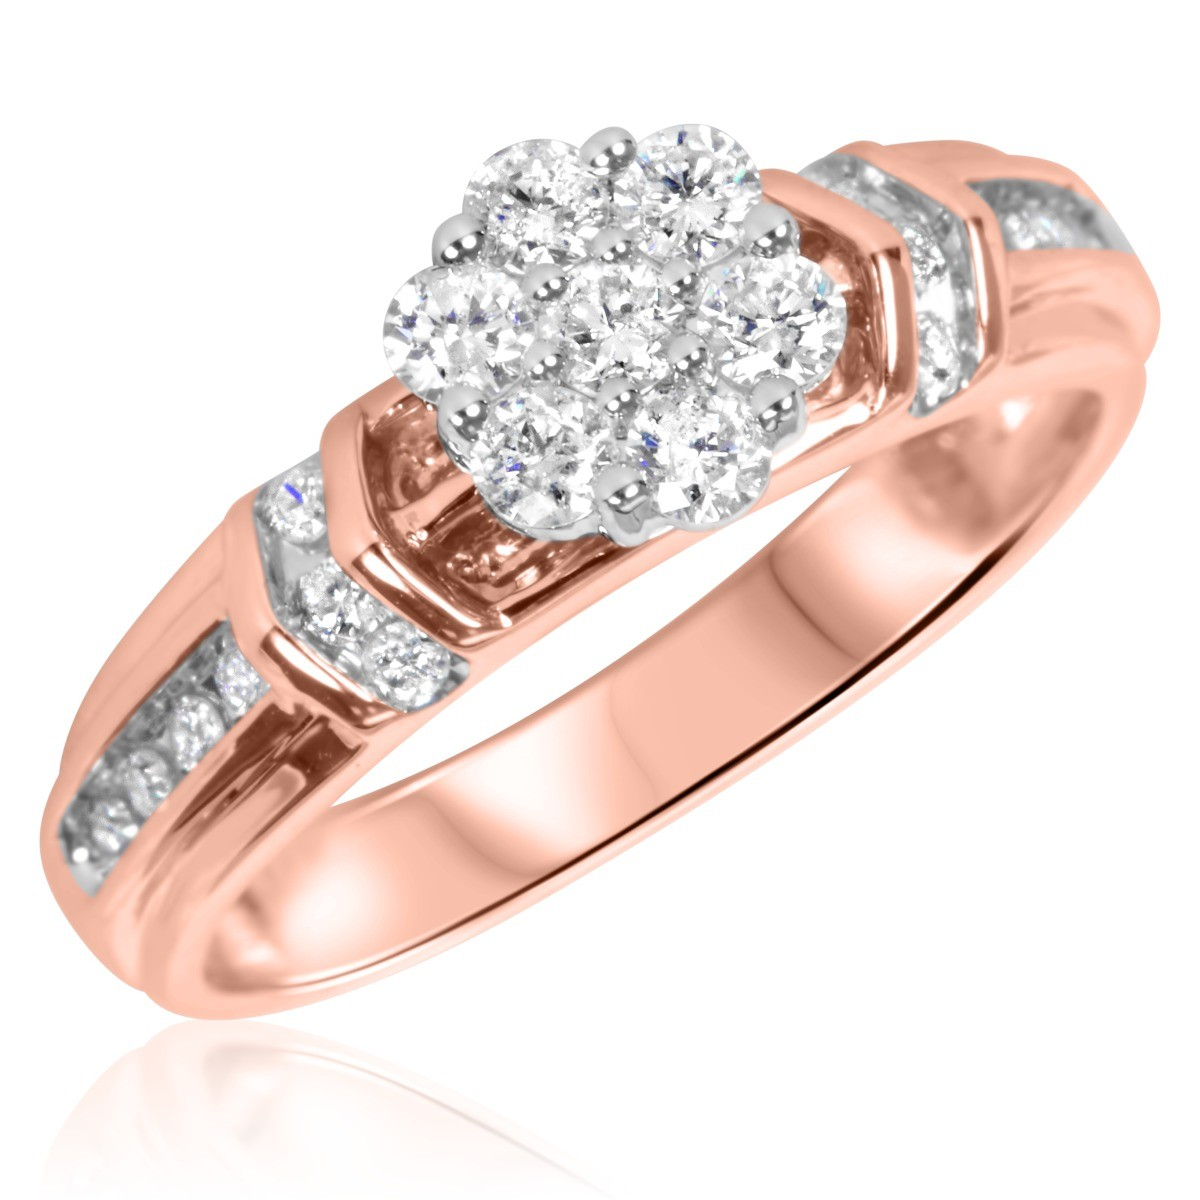 1/2 CT. T.W. Diamond Ladies' Engagement Ring 10K Rose Gold